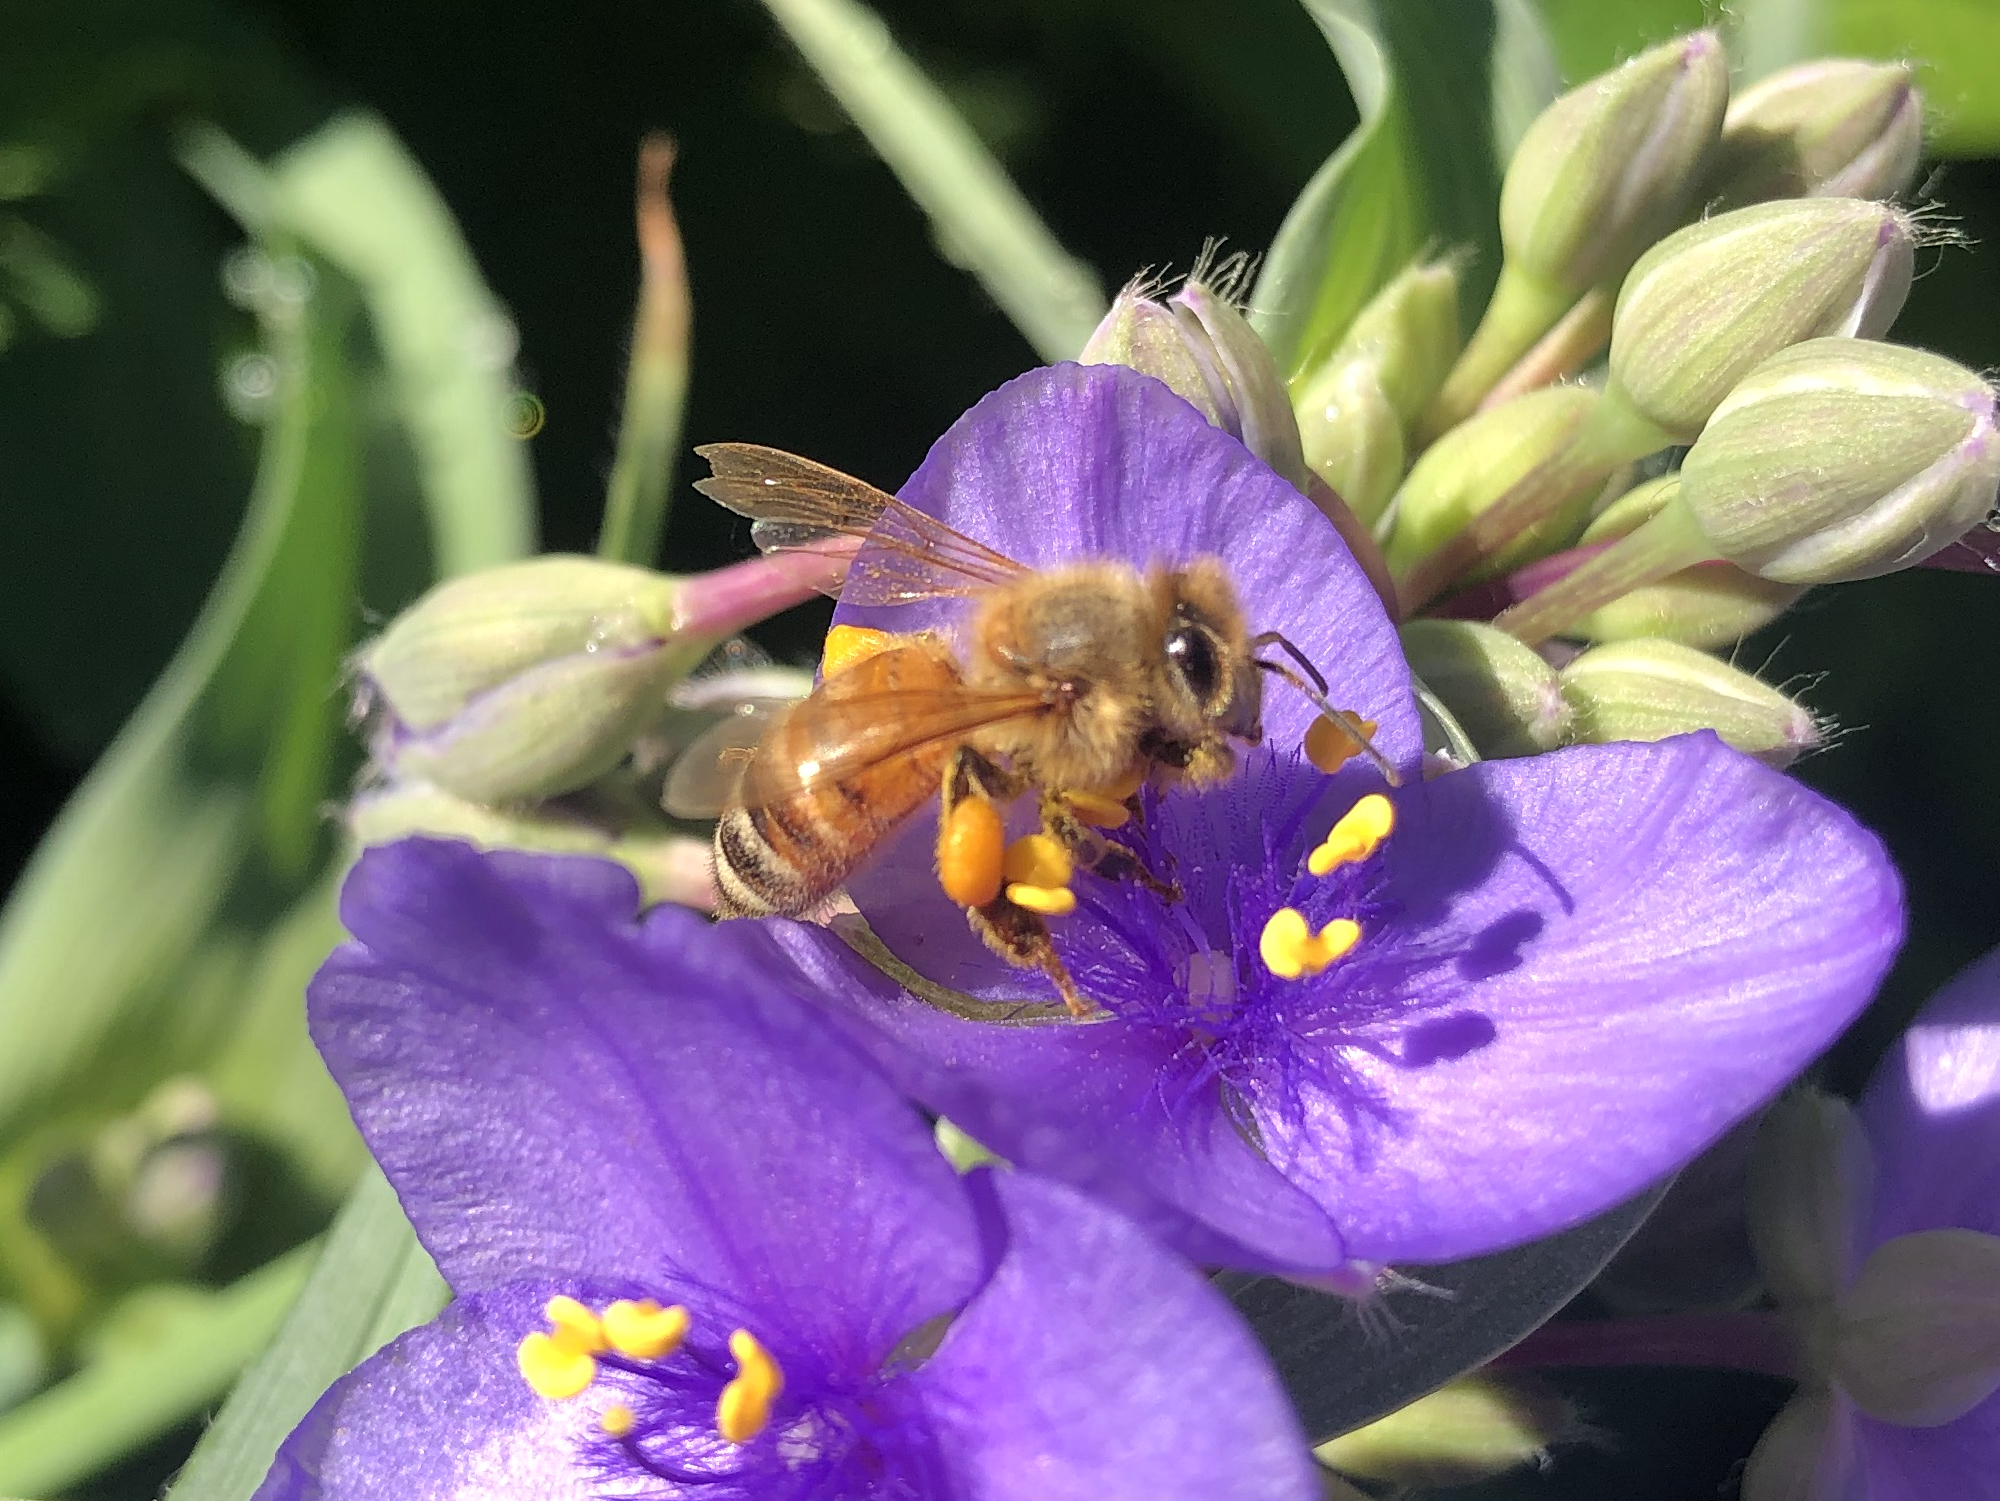 Honeybee on Spiderwort on June 11, 2020.